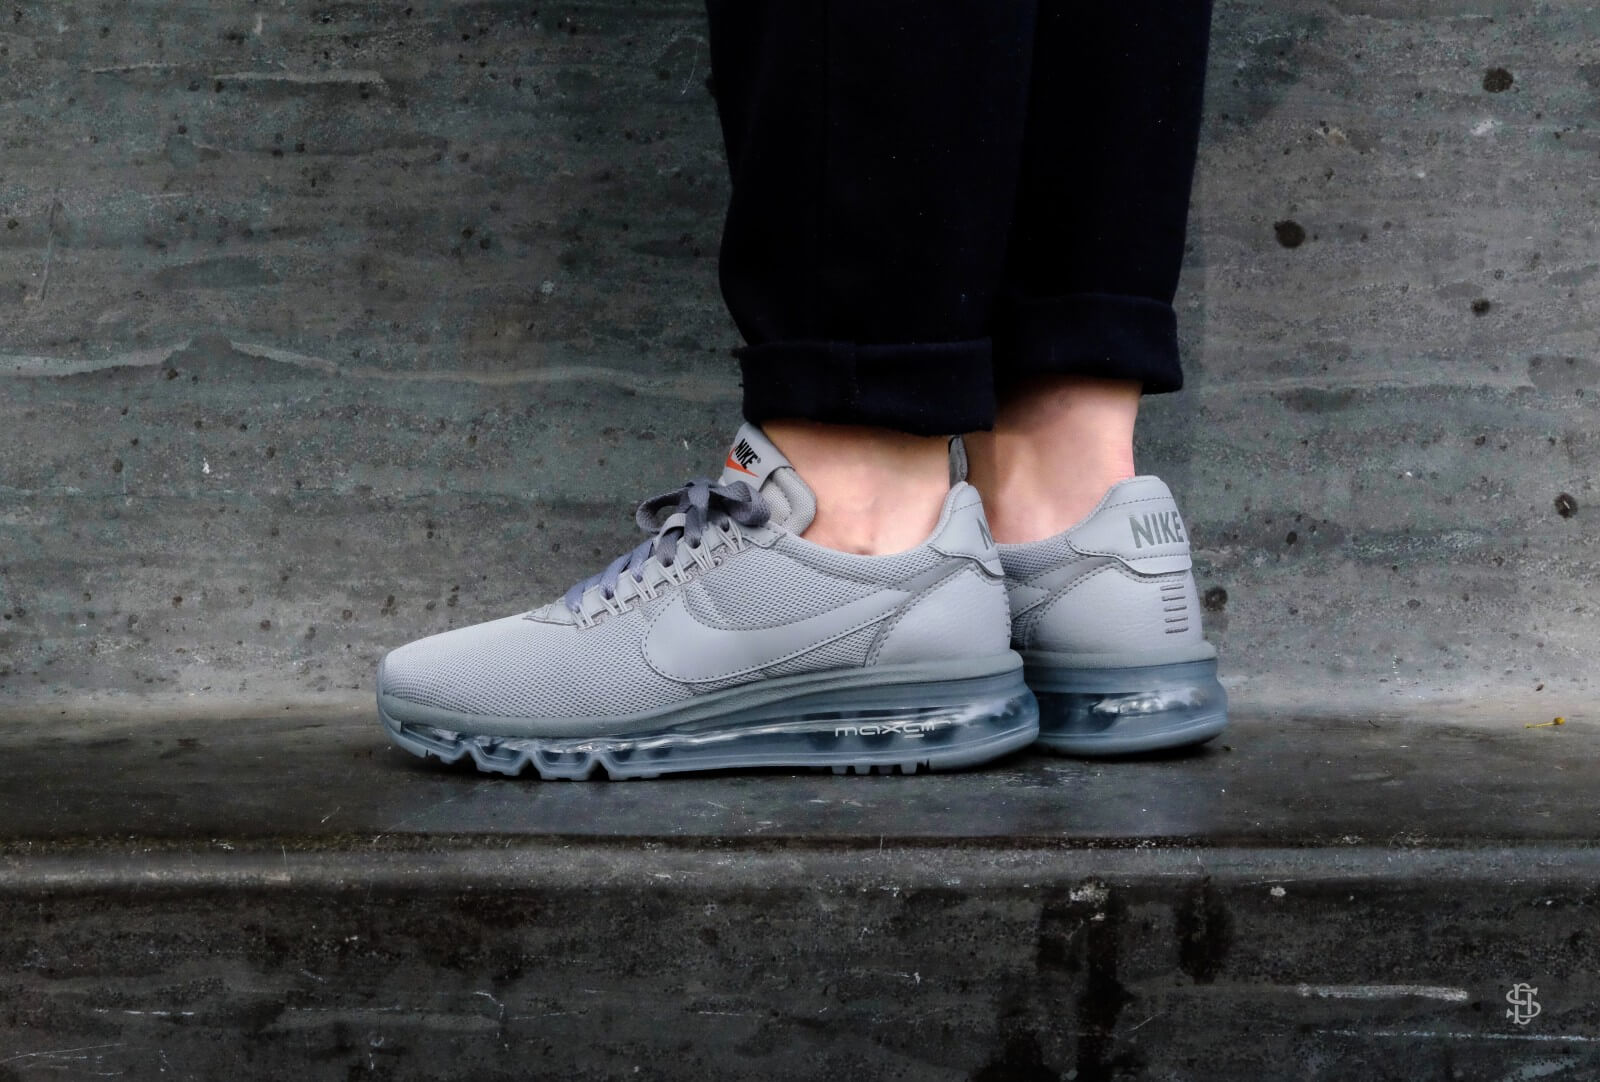 Wholesale Nike W Air Max LD Zero SE Pure Platinum White 911180 002 Women's Running Shoes Sneakers